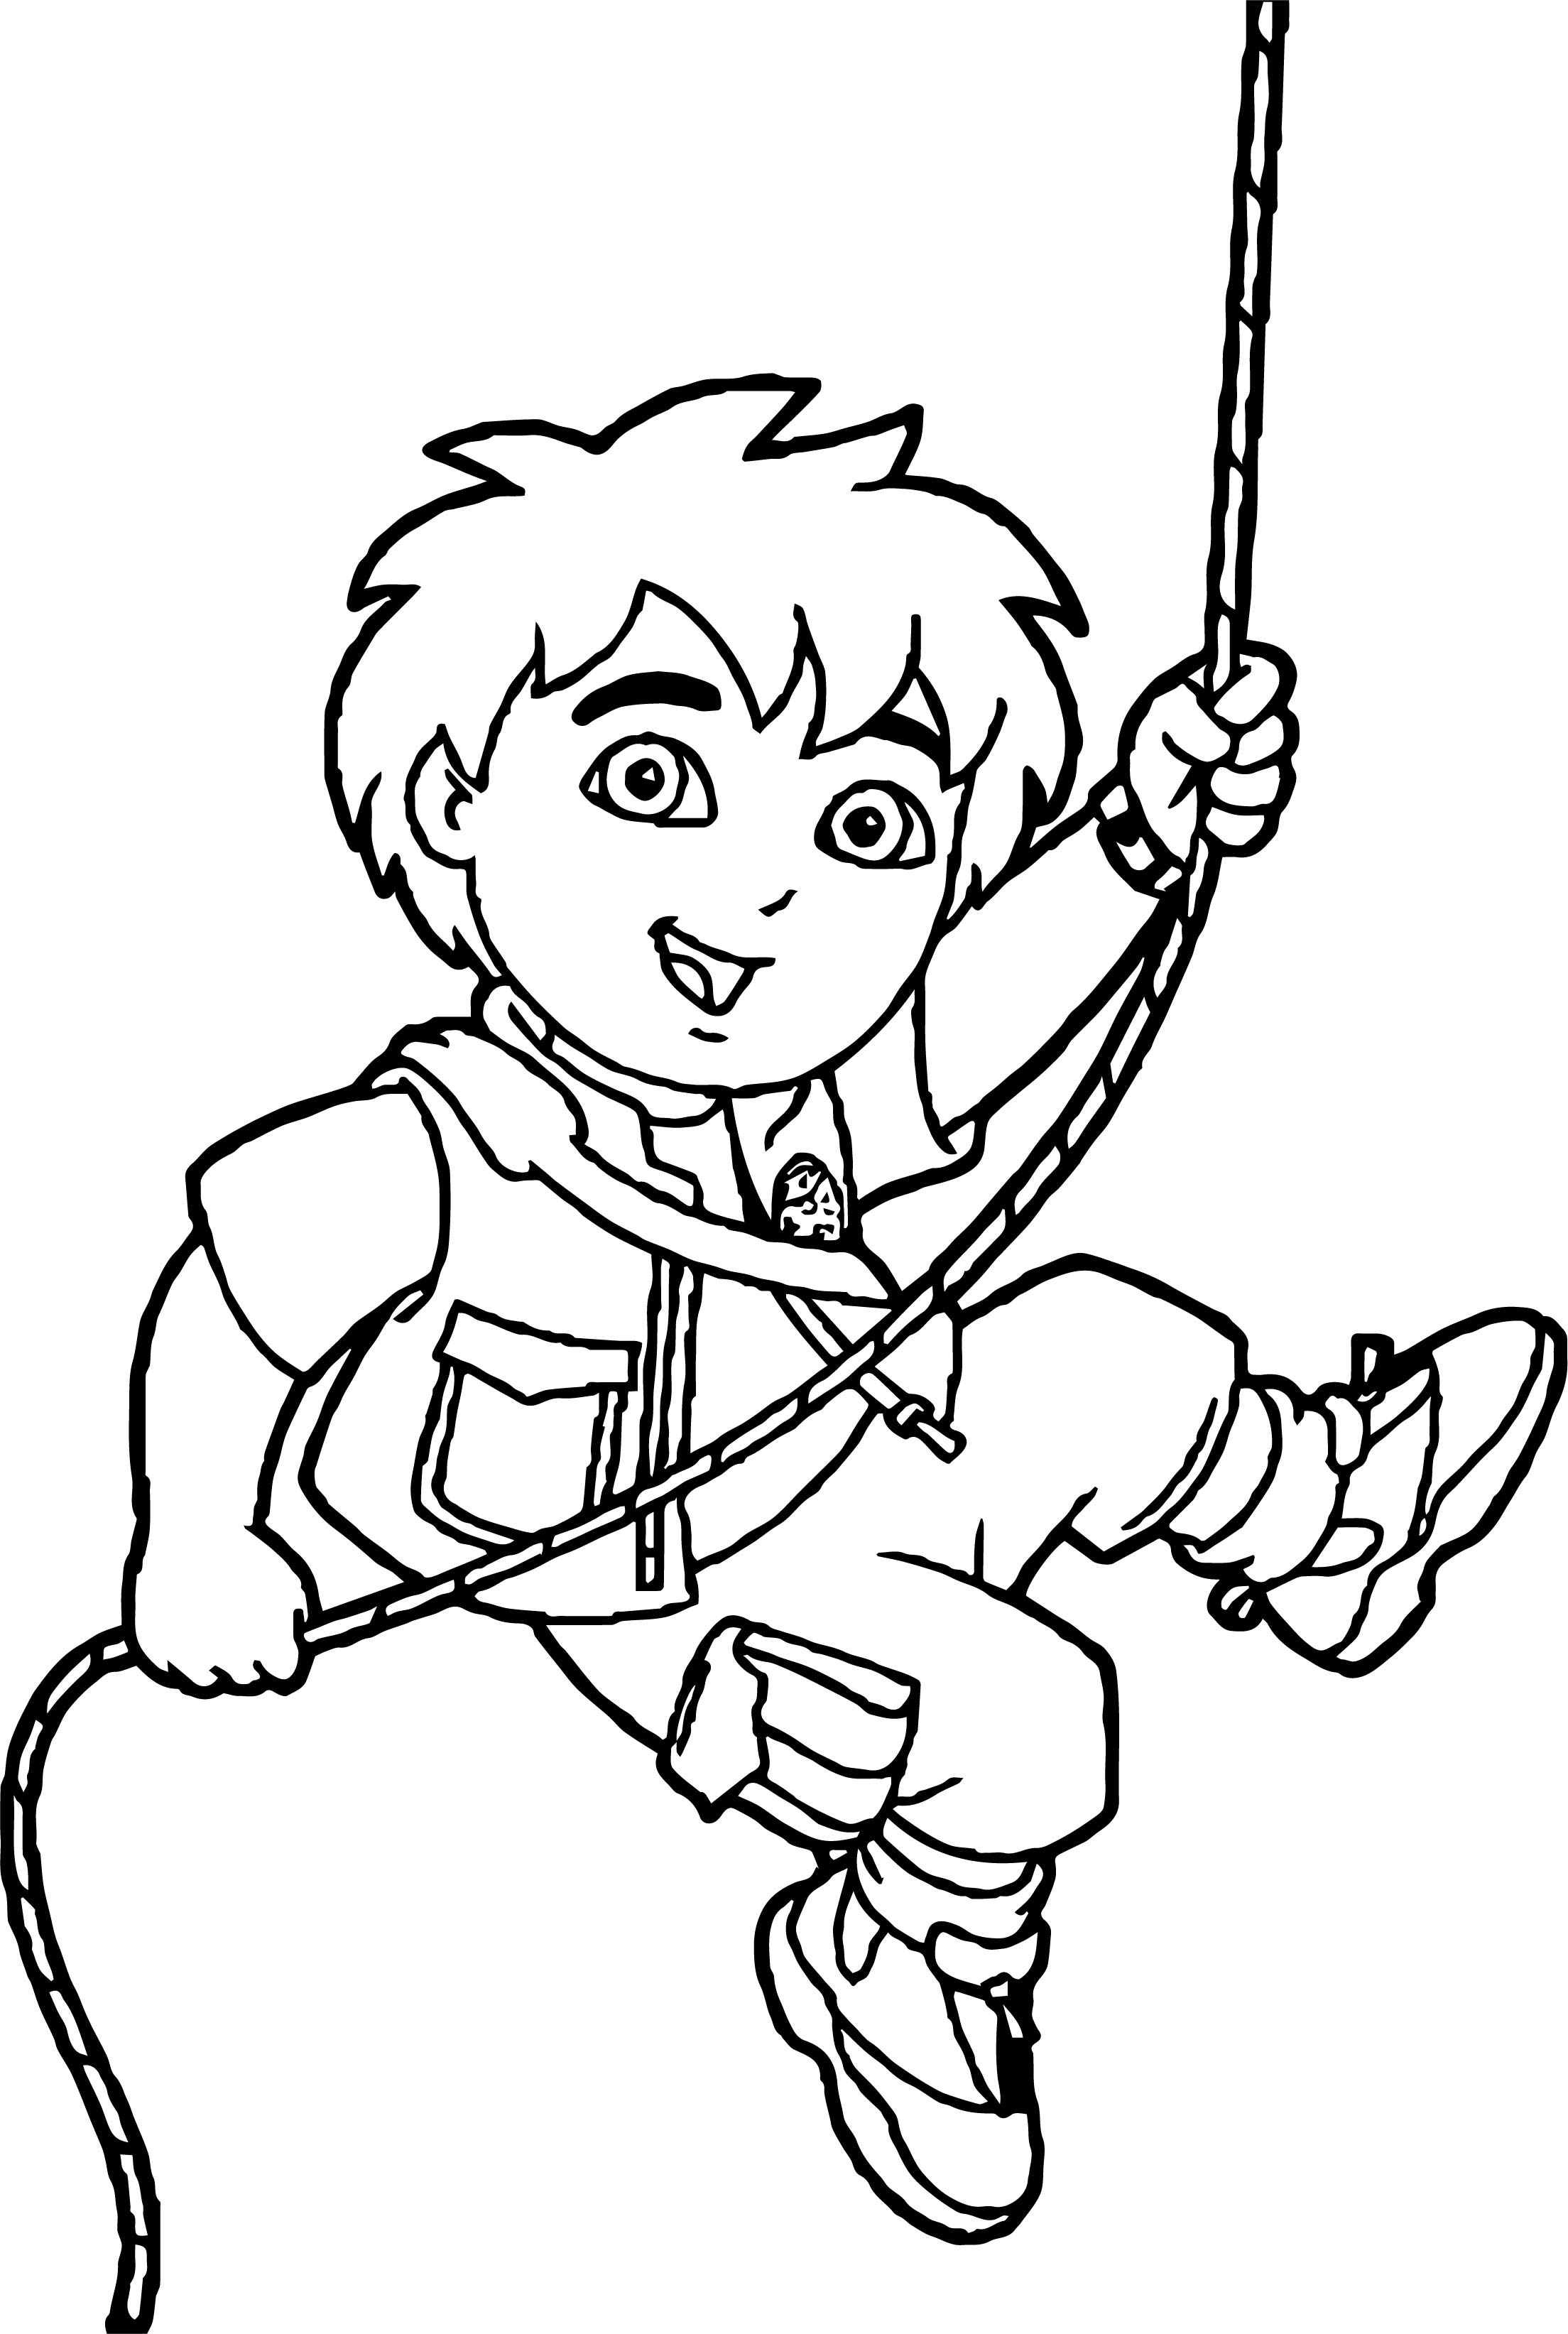 go diego go rope coloring page wecoloringpagecom